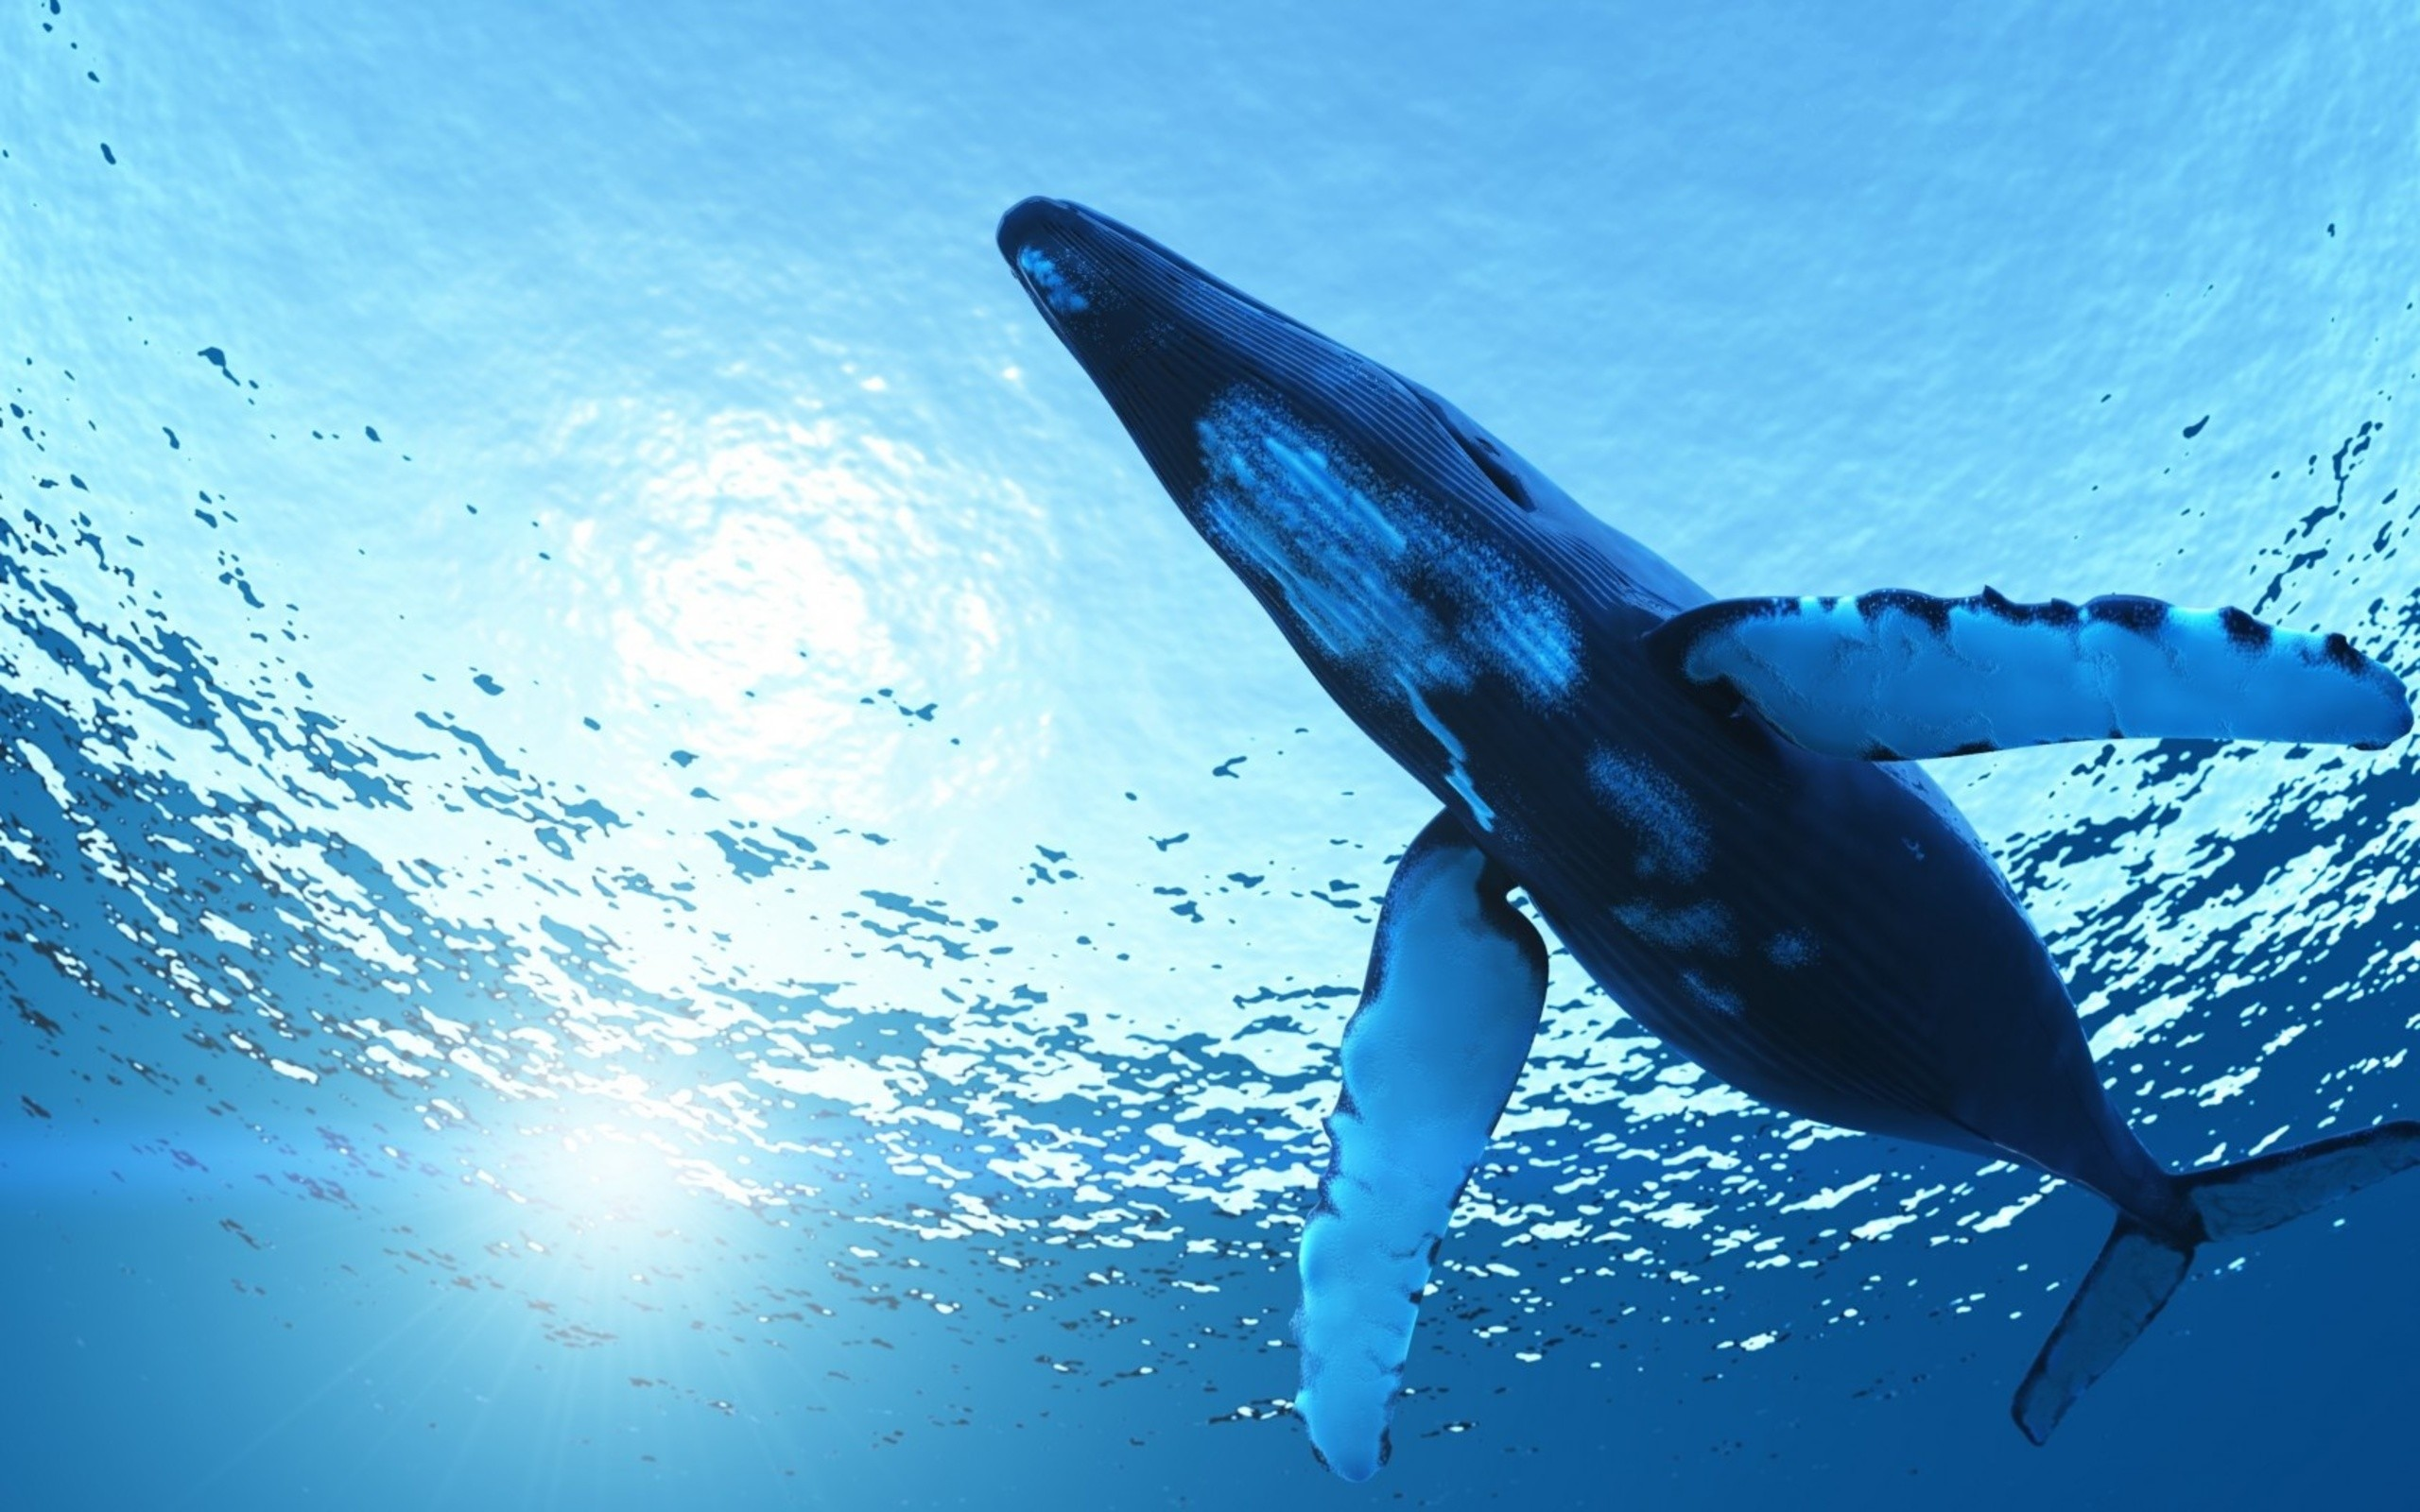 Whale Hd Wallpapers Backgrounds Wallpaper Data src   Whale 2560x1600